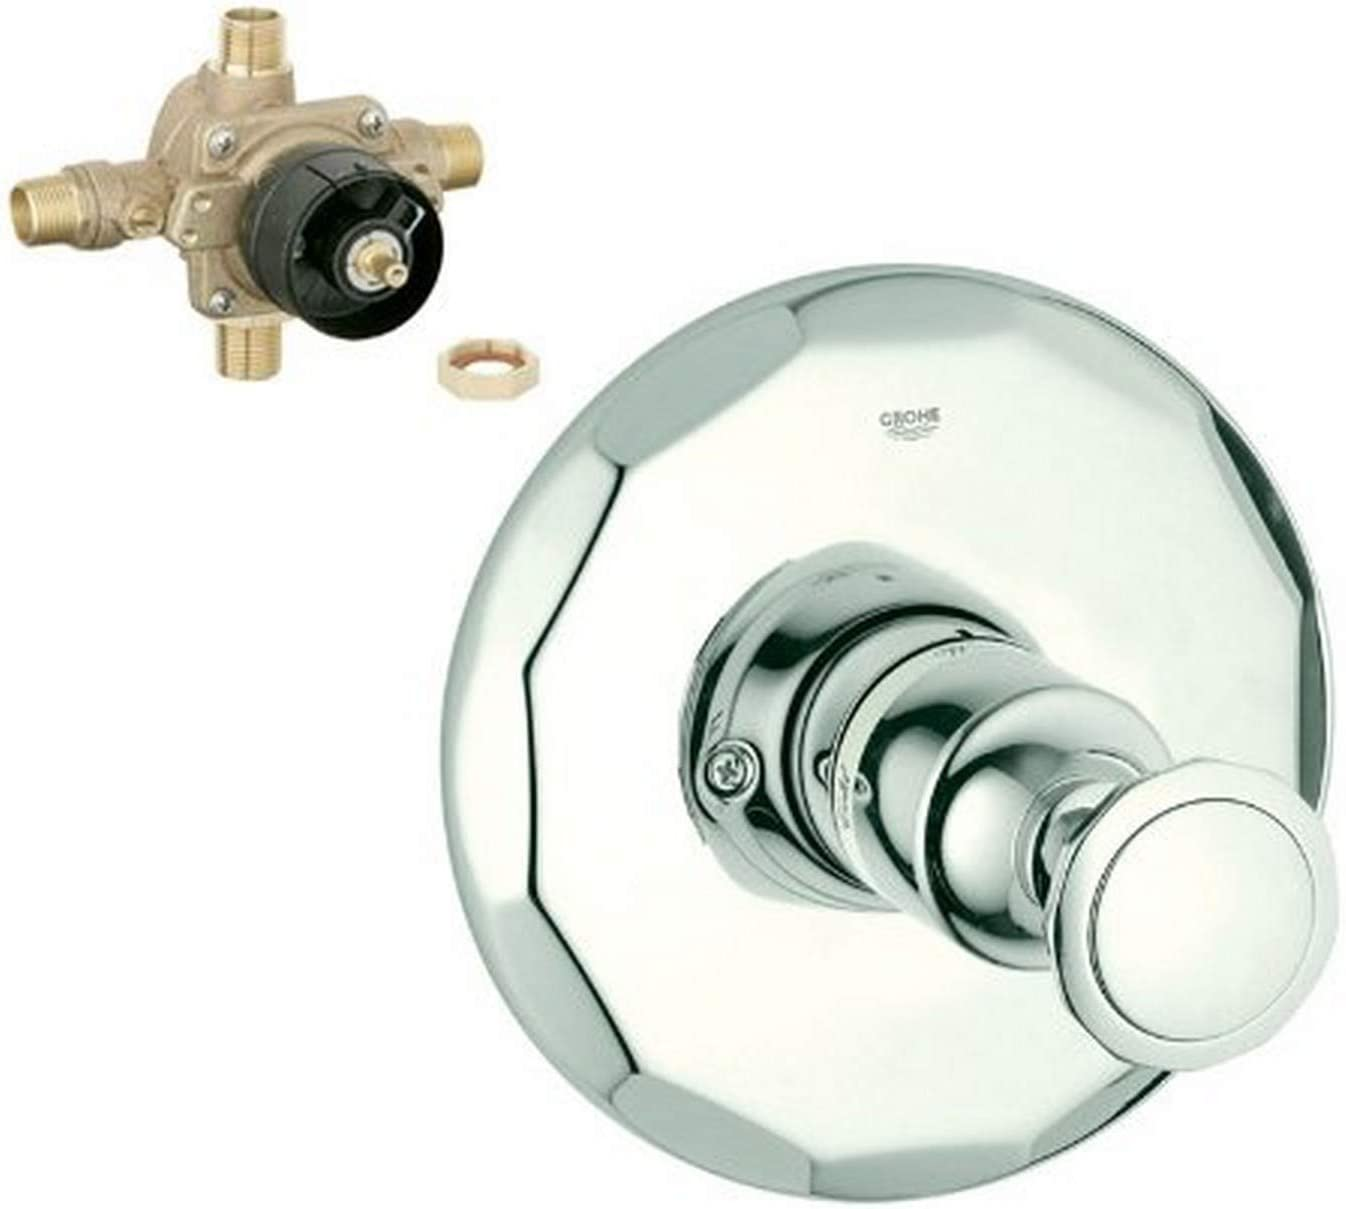 Chrome Grohe K19268-35015R-000 Kensington Tub and Shower Valve Kit